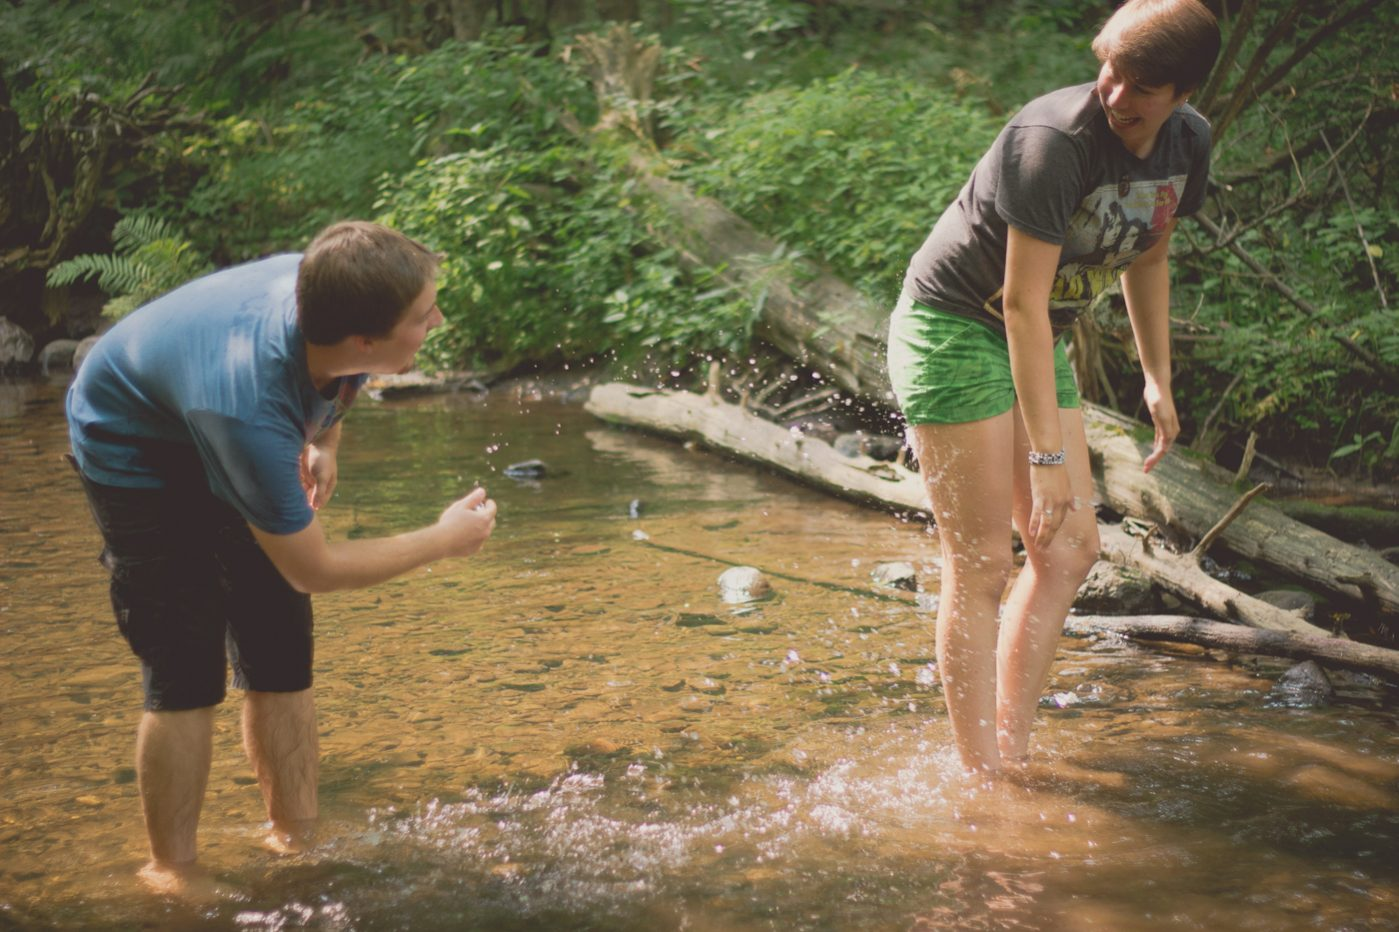 Couple playing with the water in a small creek.